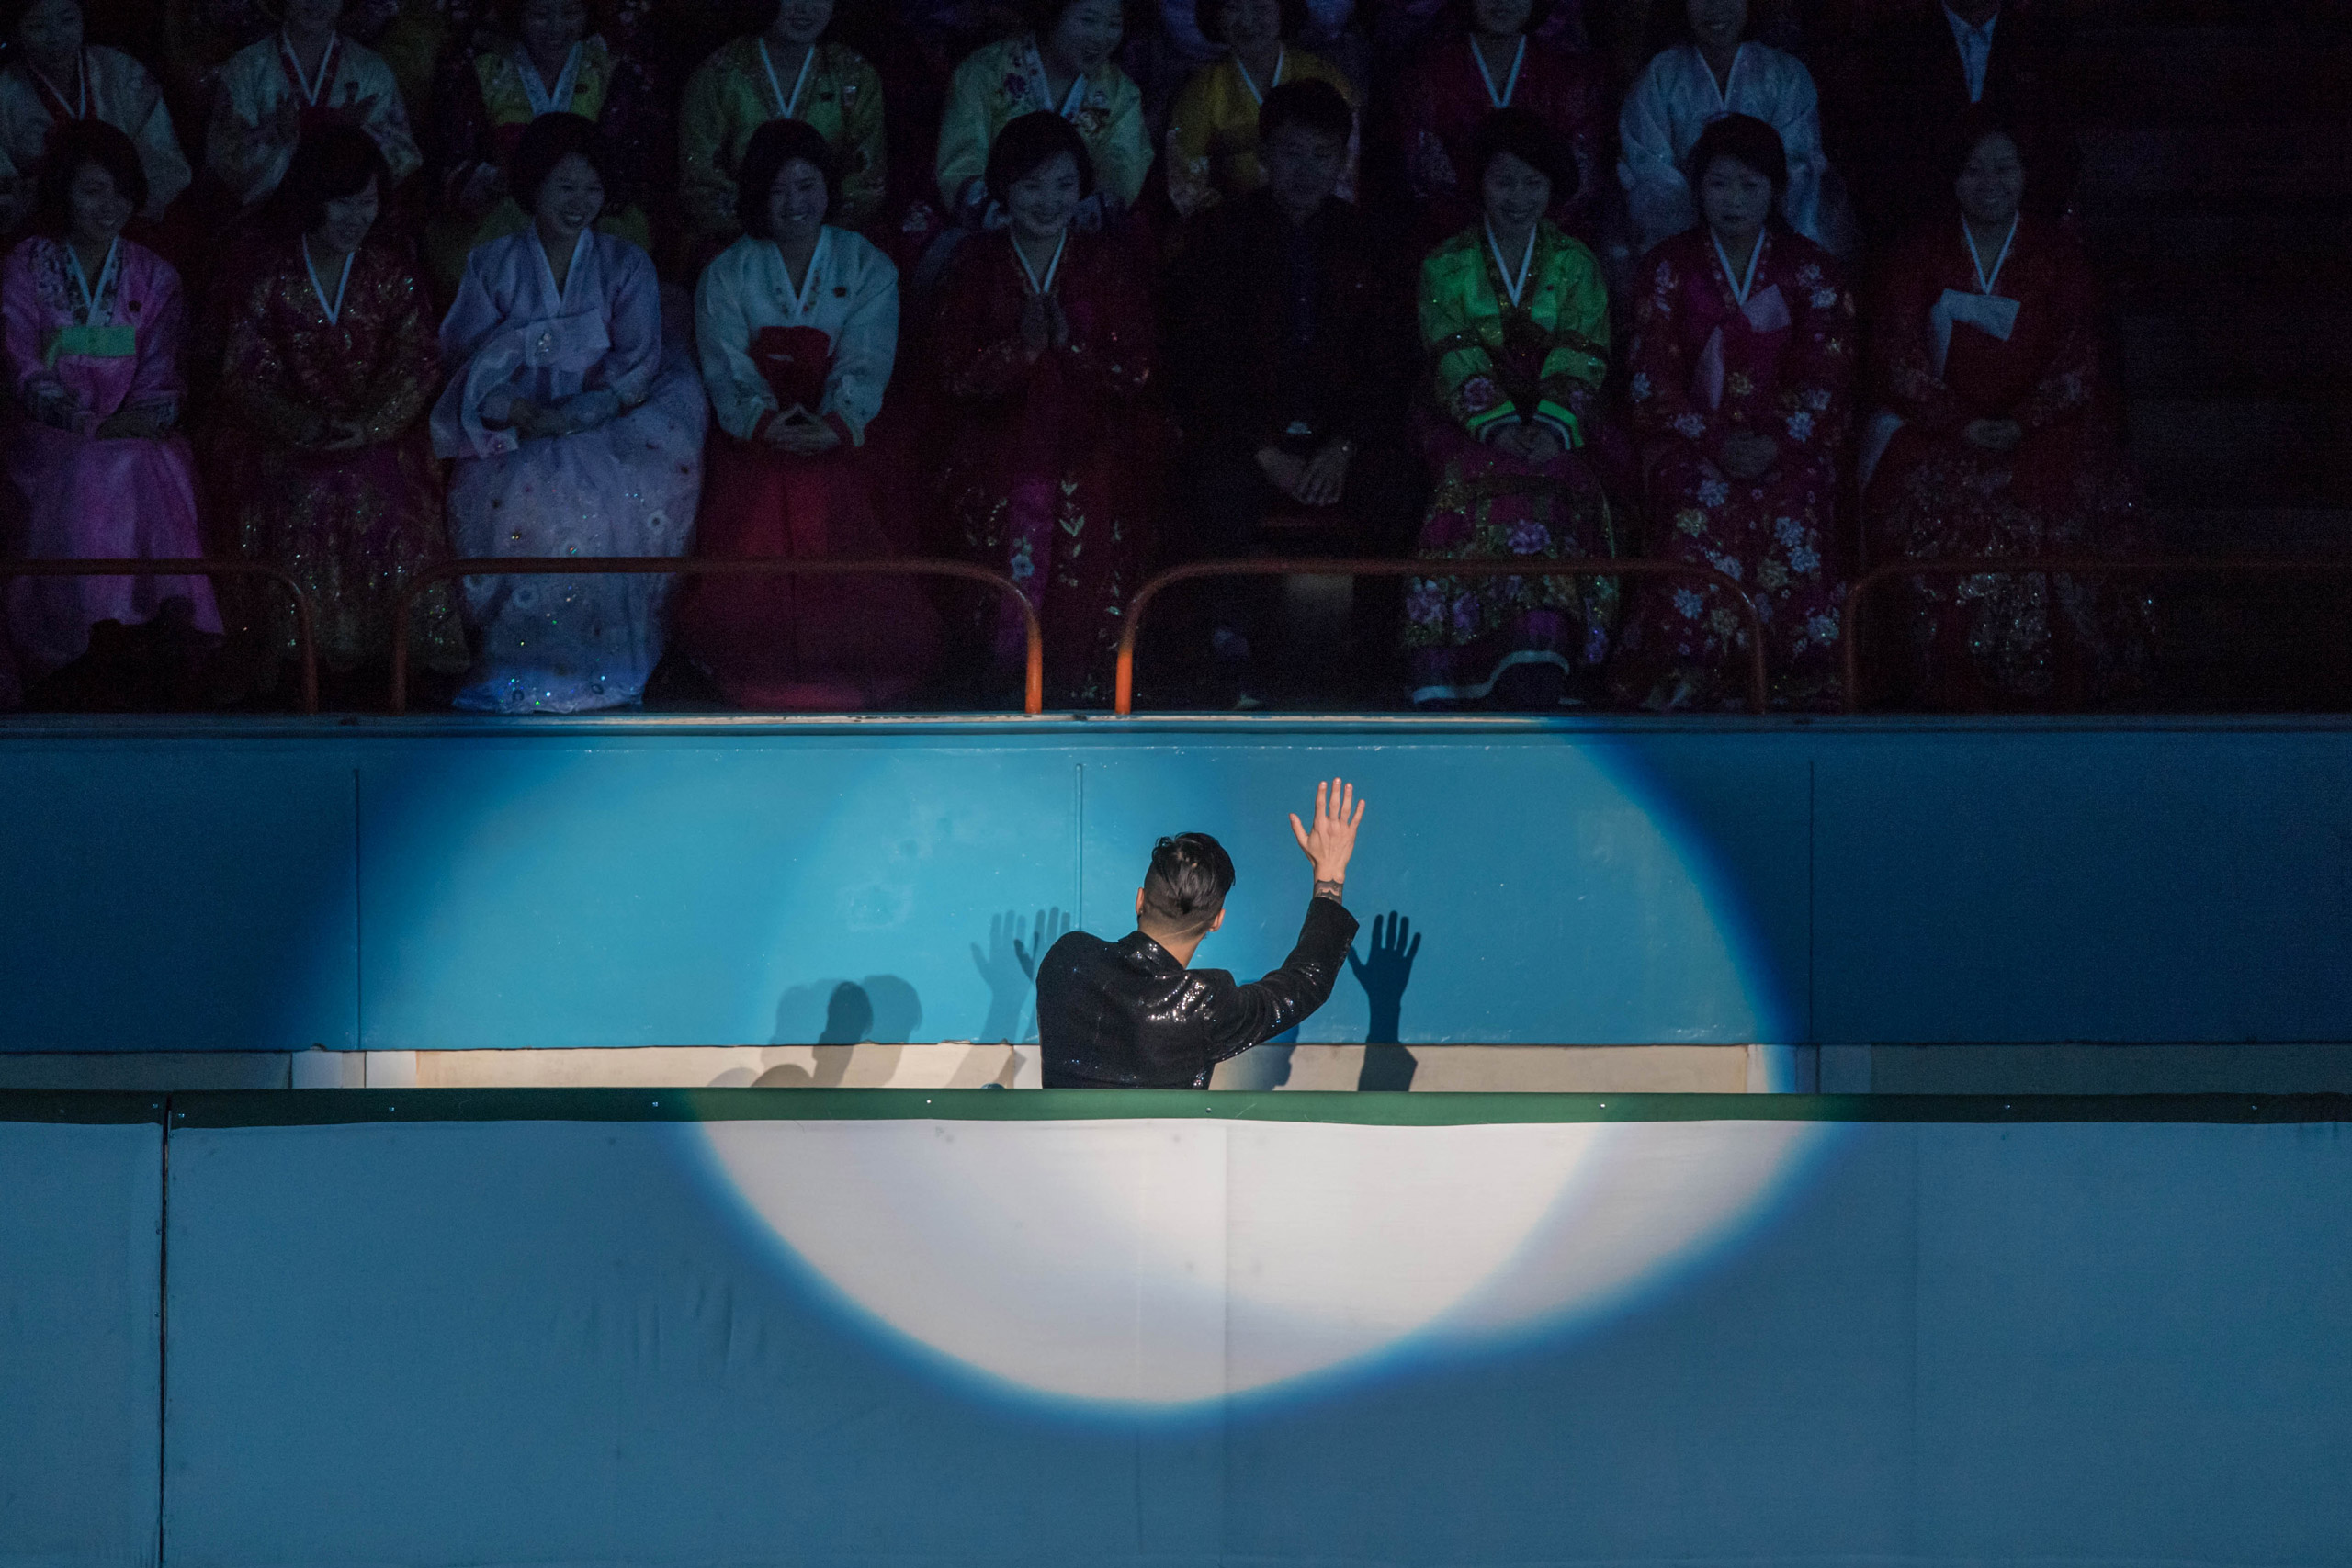 Spectators watch a figure skater perform at the Paektusan Prize International Figure Skating Festival in Pyongyang on Feb. 15, 2017. The Paektusan Prize International Figure Skating Festival is held every year to celebrate Kim Jong-Il, the leader who oversaw the North's first nuclear tests.